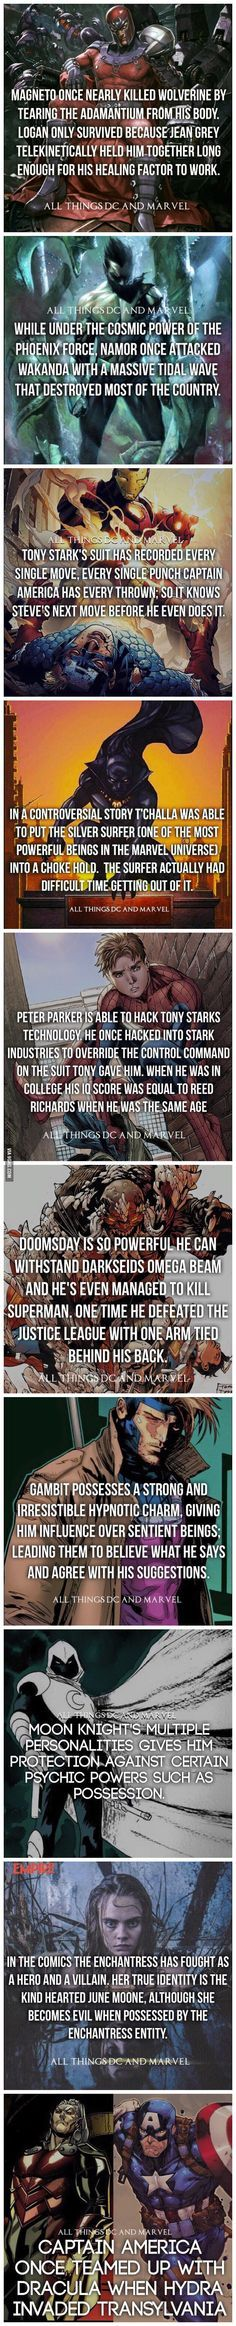 Superhero Facts: Part 4 - 9GAG                                                                                                                                                                                 Más